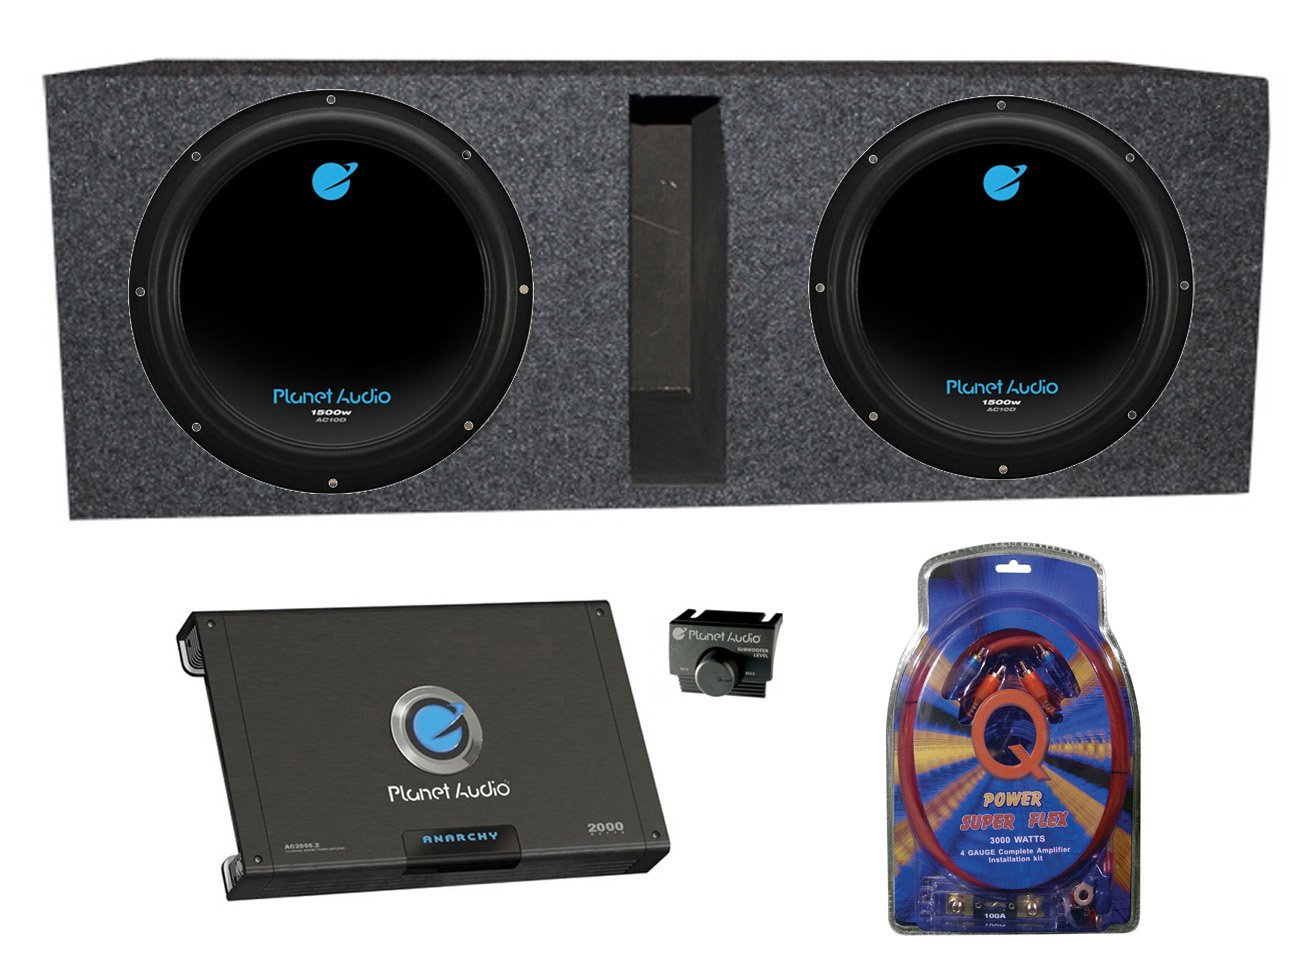 2 Planet Audio Ac10d 10 3000w Subwoofers Vented Box How To Install Subwoofer And Amp Channel Kit Electronics